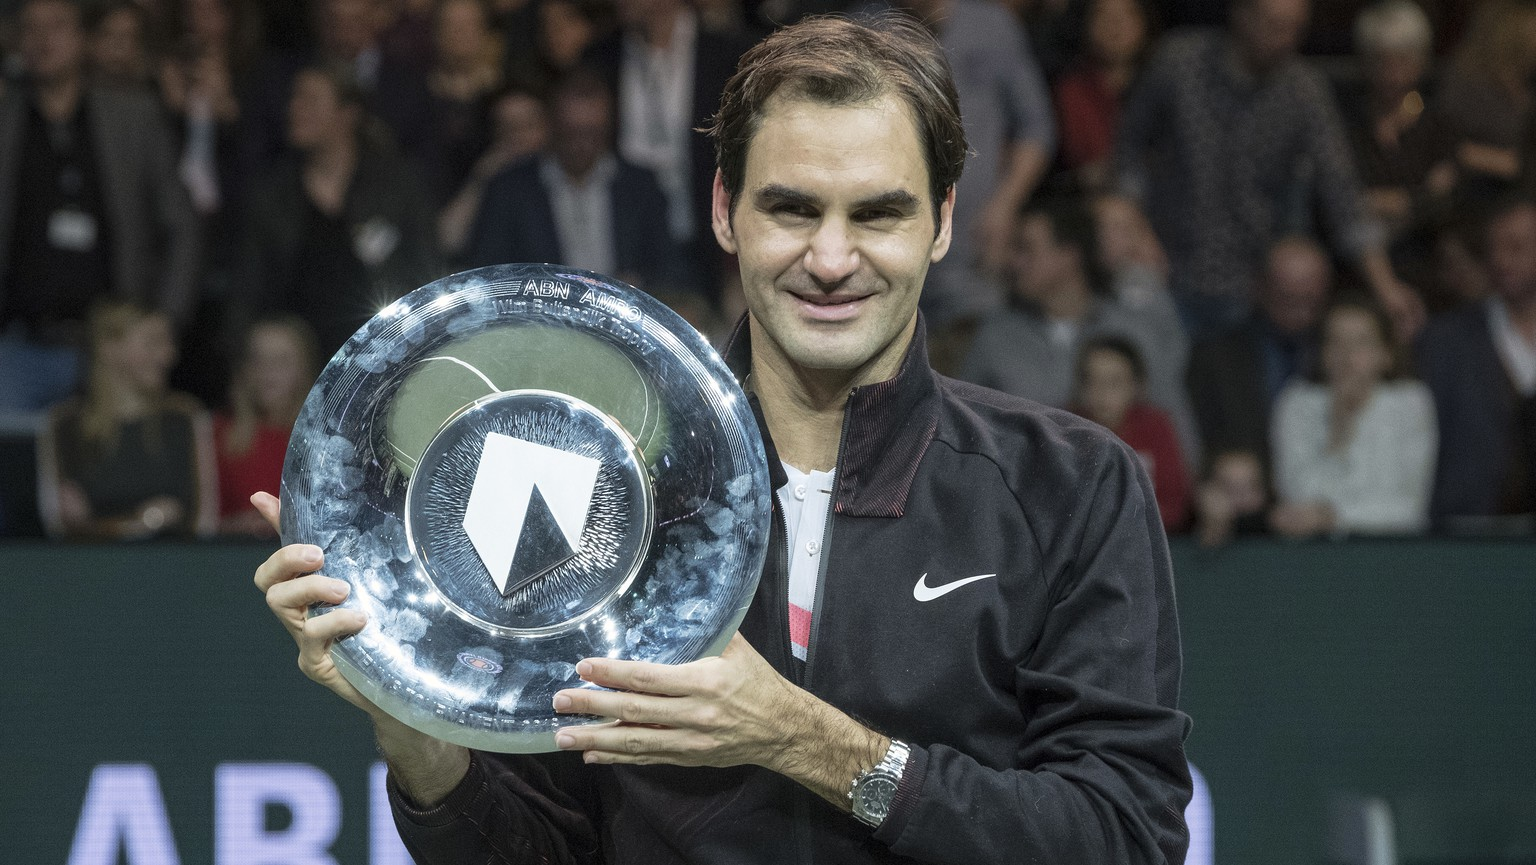 Roger Federer of Switzerland holds the trophy as he celebrates winning his match against Bulgaria's Grigor Dimitrov in two sets, 6-2, 6-2, in the men's singles final of the ABN AMRO world tennis tournament at the Ahoy stadium in Rotterdam, Netherlands, Sunday, Feb. 18, 2018. (AP Photo/Patrick Post)